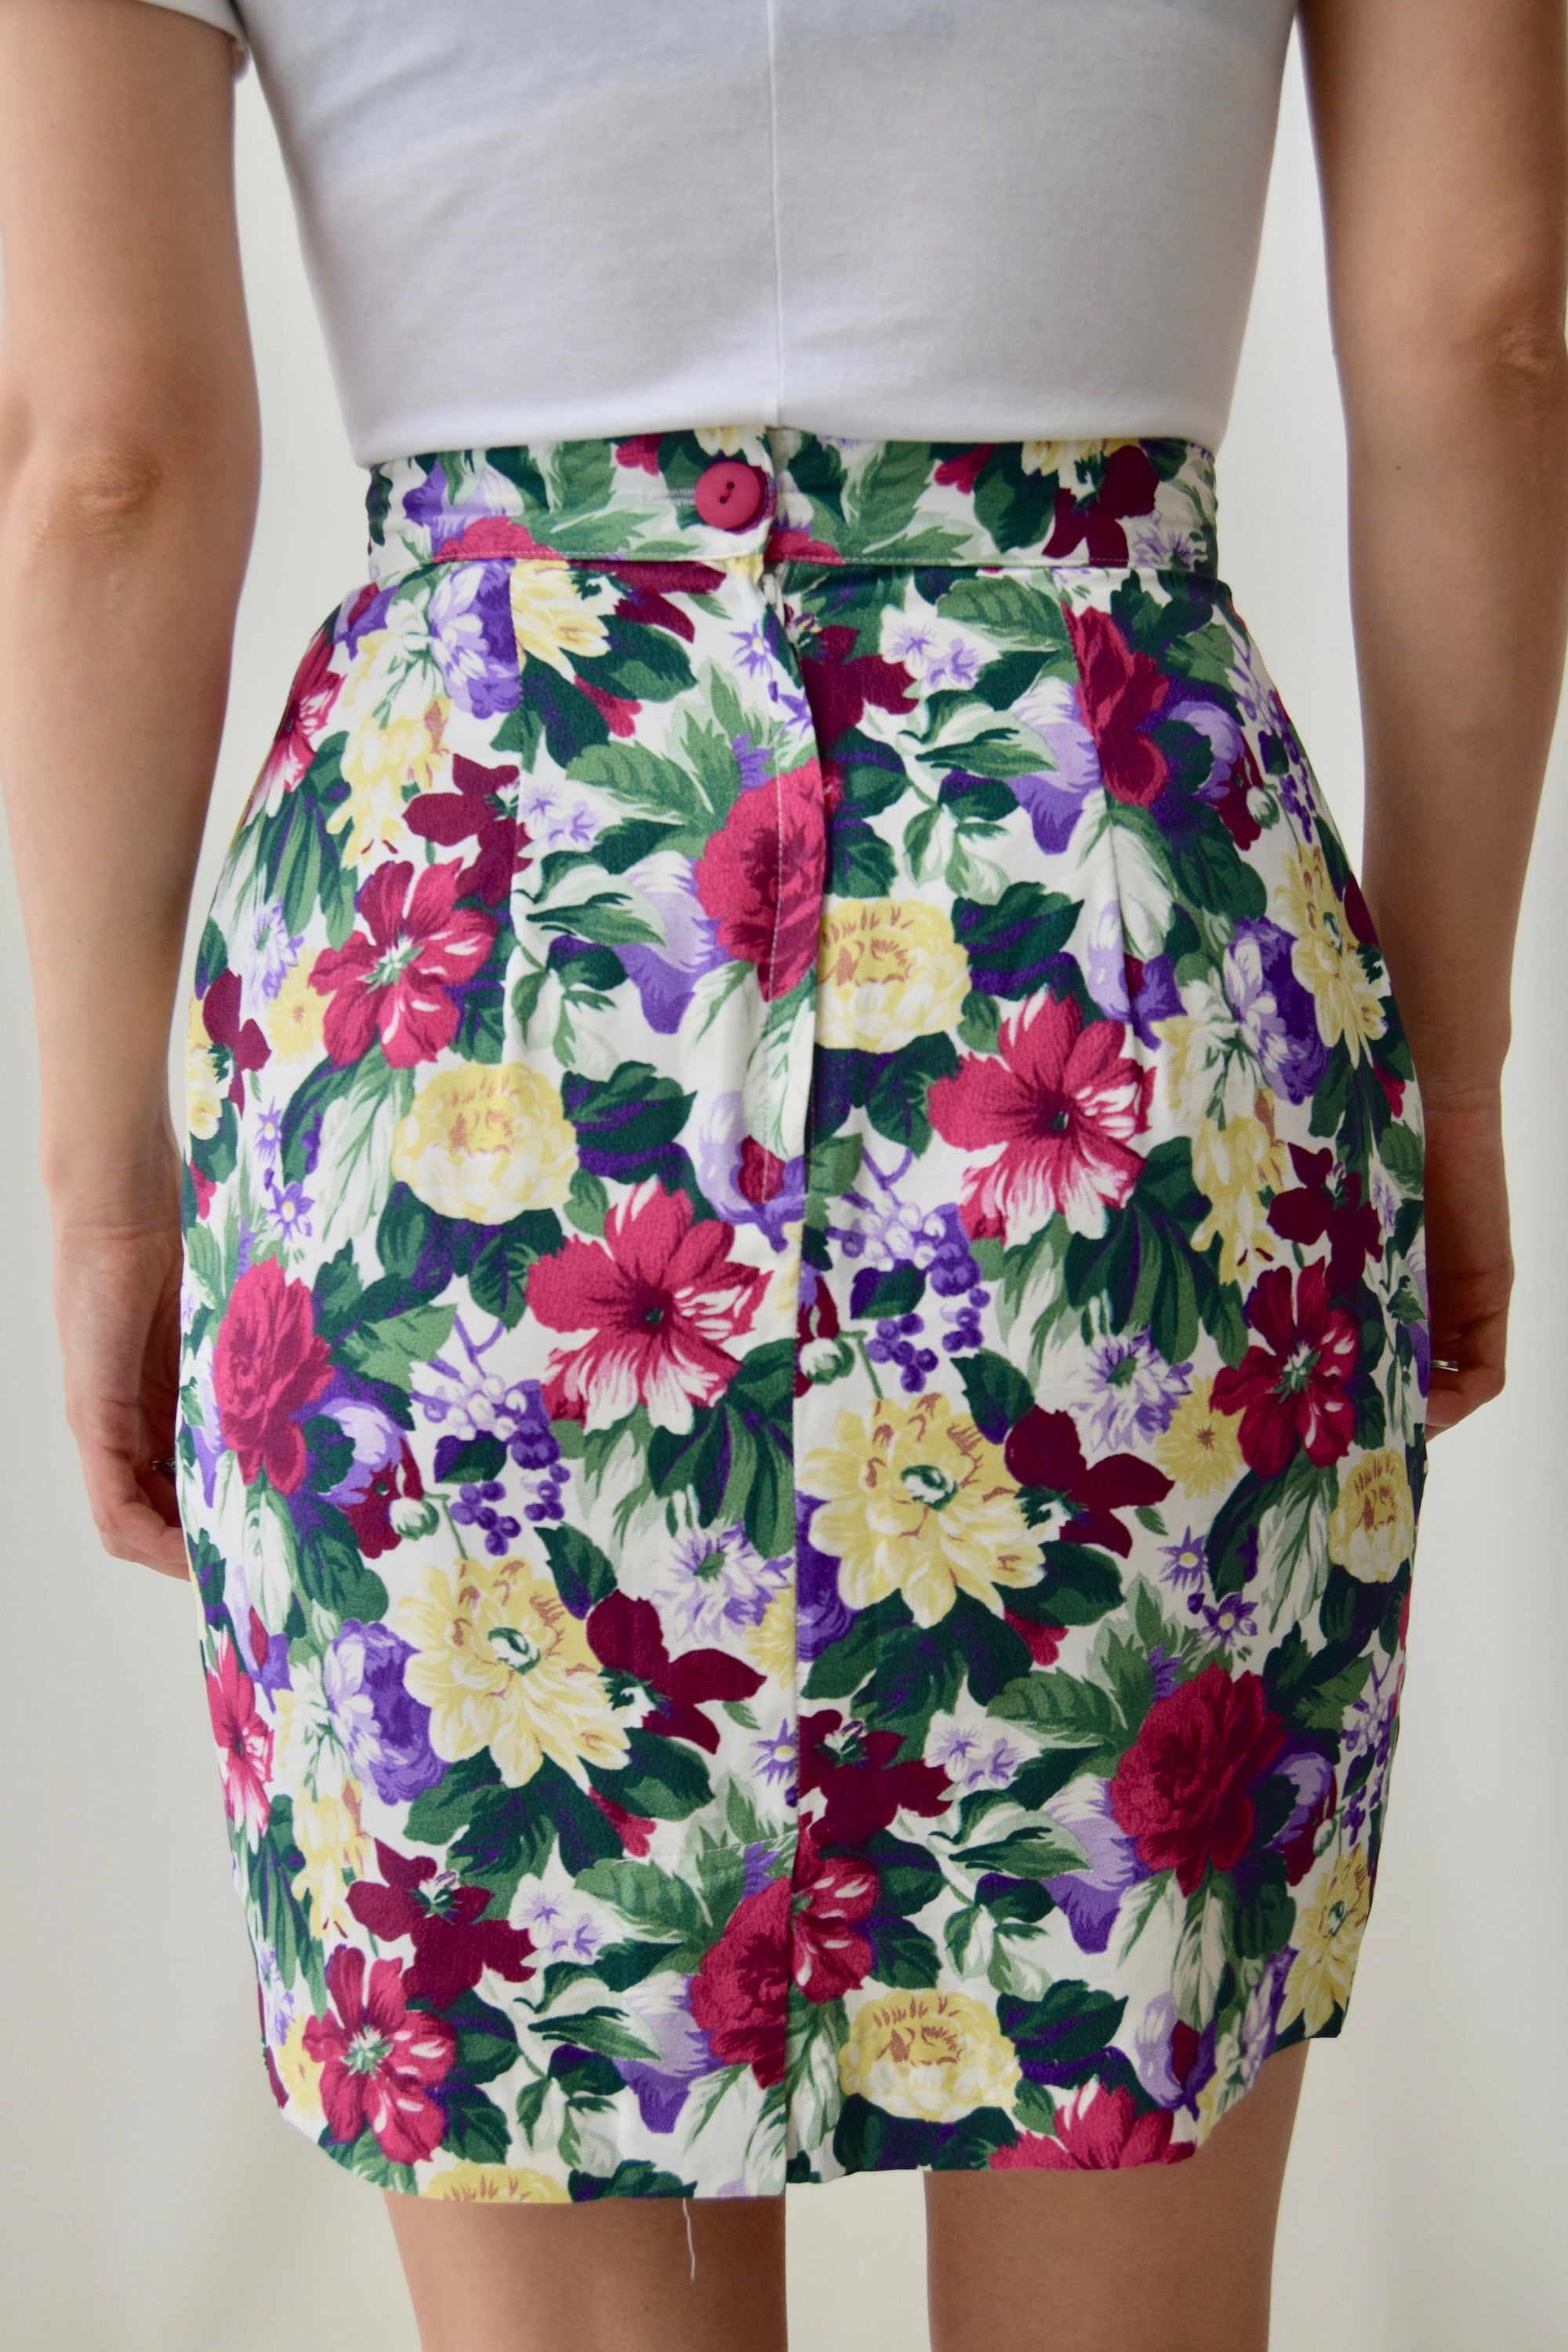 90's Floral Wallpaper Skirt